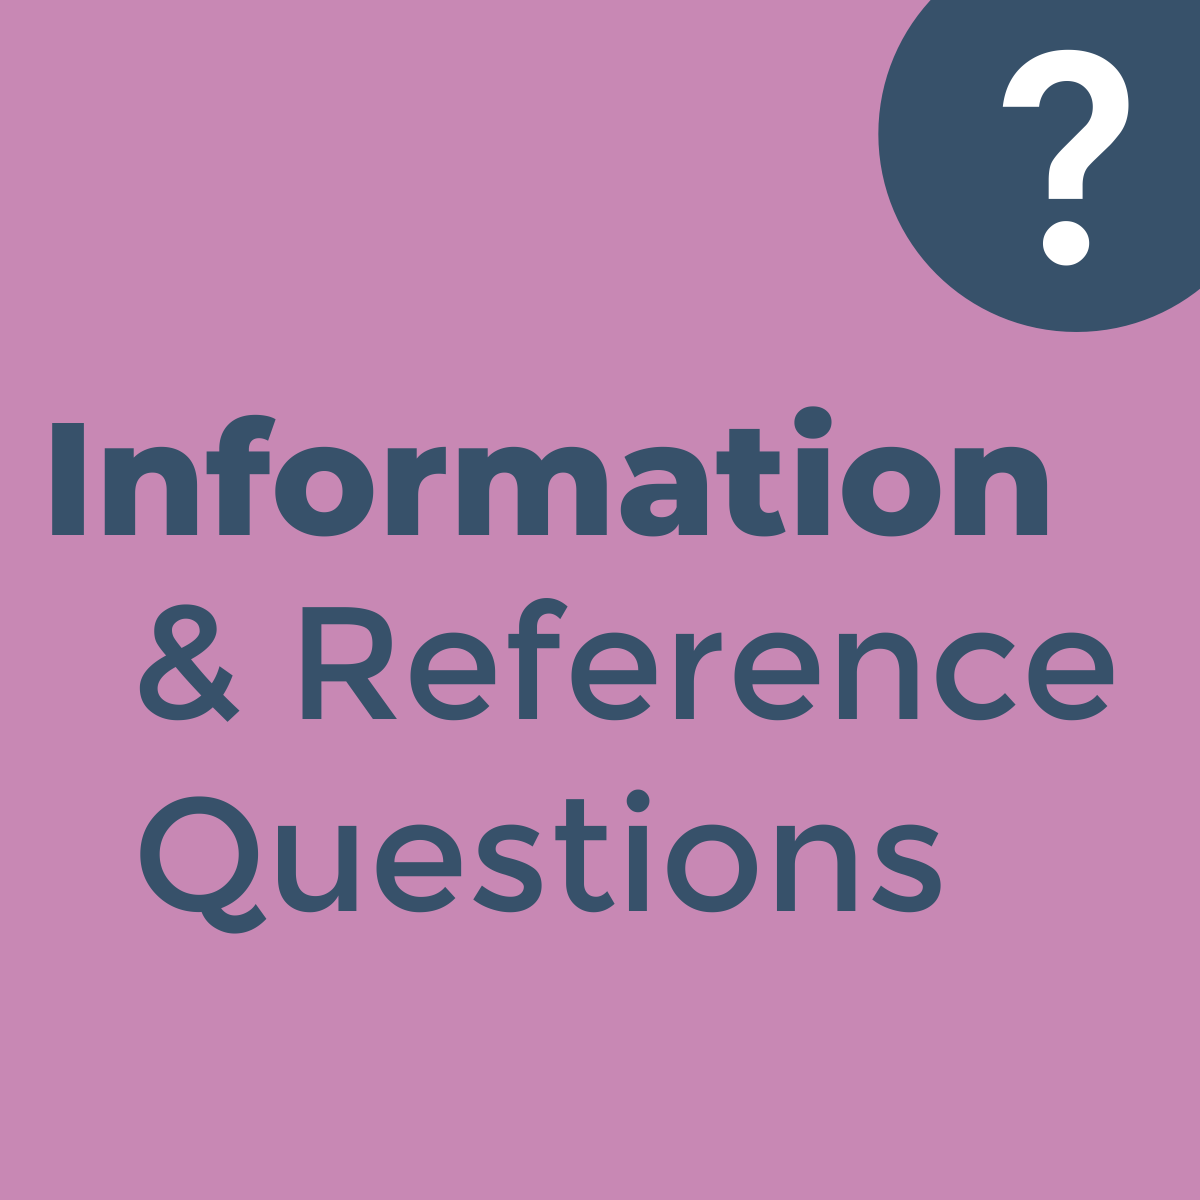 Information and Reference Questions